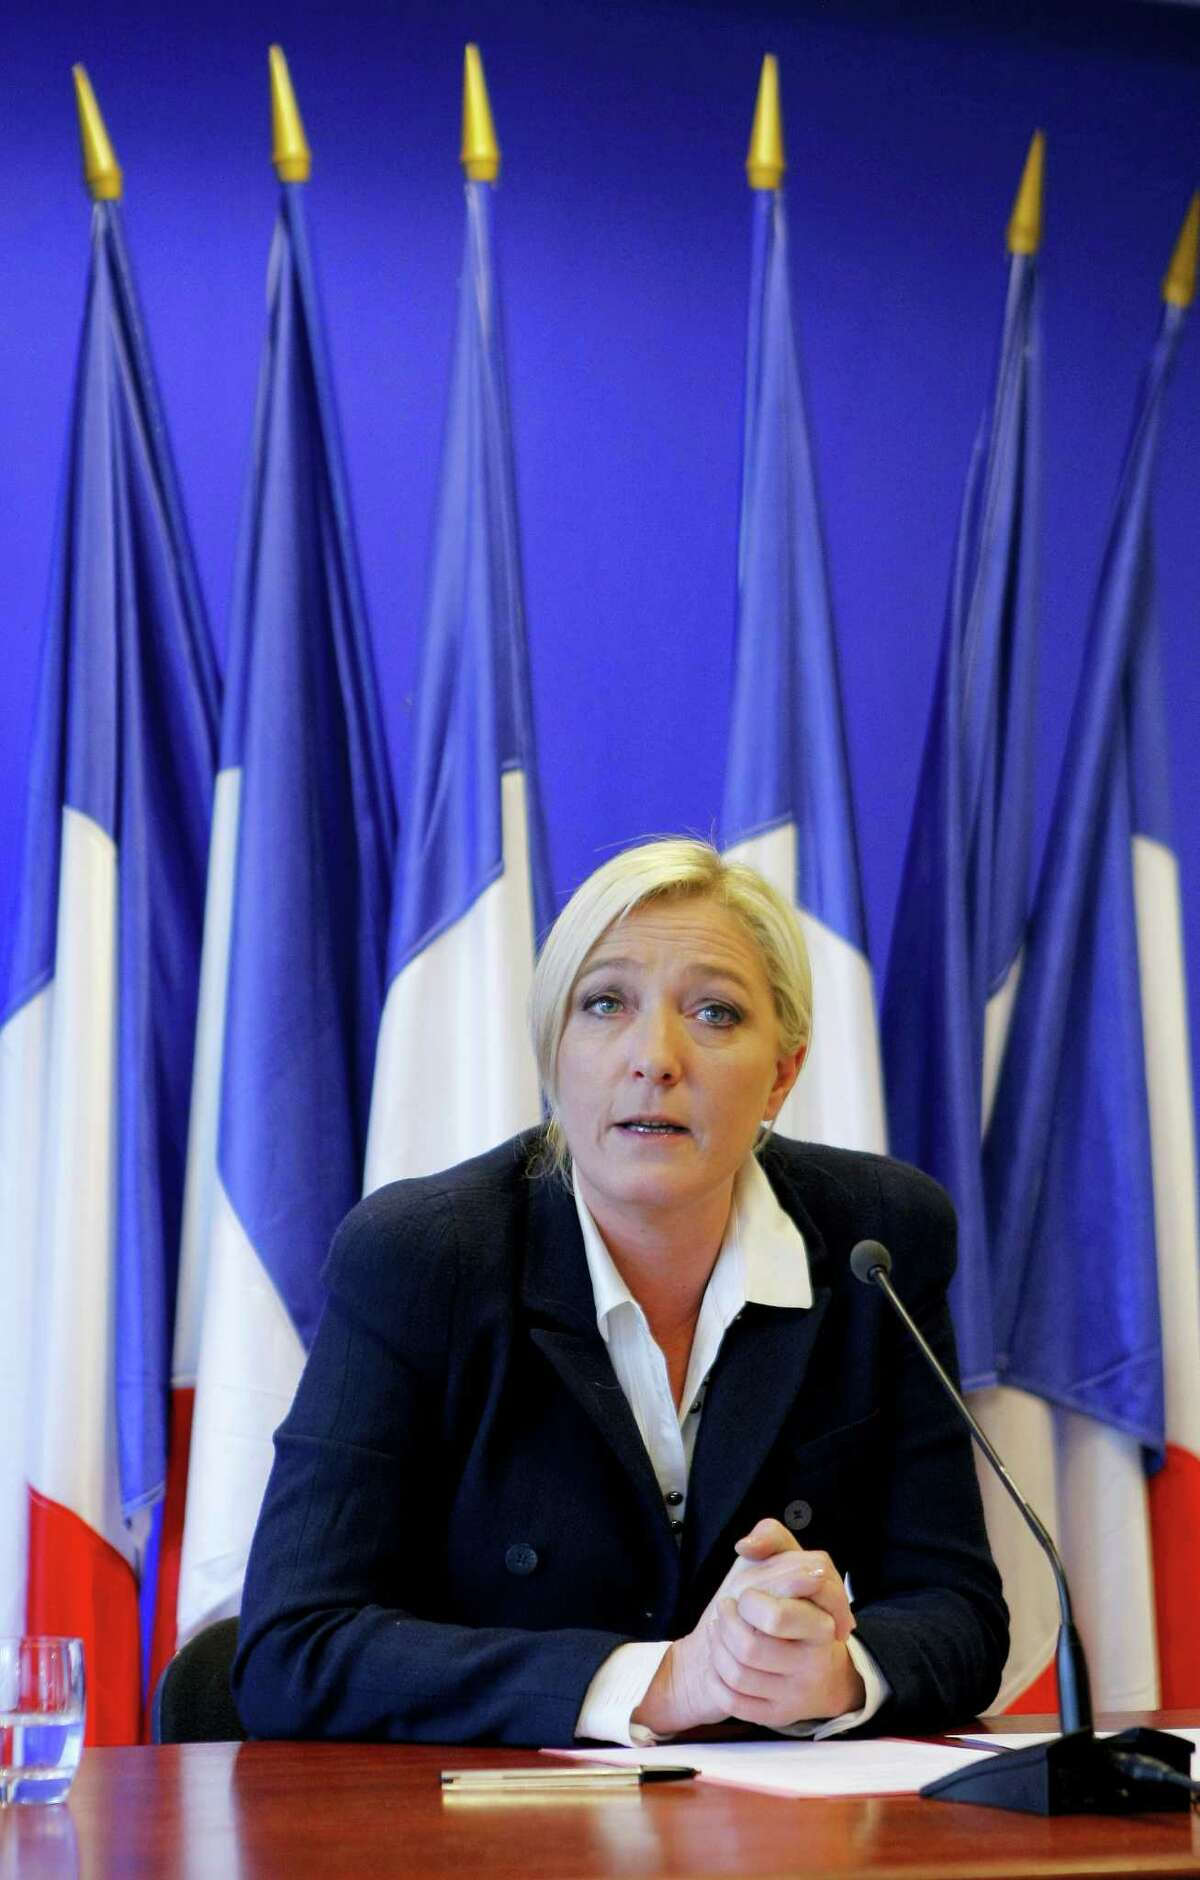 In this file photo dated Monday, March 21, 2011, Marine Le Pen, France's far-right National Front political party leader, speaks during a news conference the day after the first round of local elections at the party headquarters in Nanterre, near Paris. The seasoned campaigner Marine Le Pen seems to have polished her image ahead of the Sunday May 7, 2017, runoff presidential election, although her background and driving ambition has moulded her over many years of political campaigning. The 48-year-old mother of three Marine Le Pen portrays herself as the guardian of a disabused France, where citizens are losing their culture, and their sovereignty to the European Union.